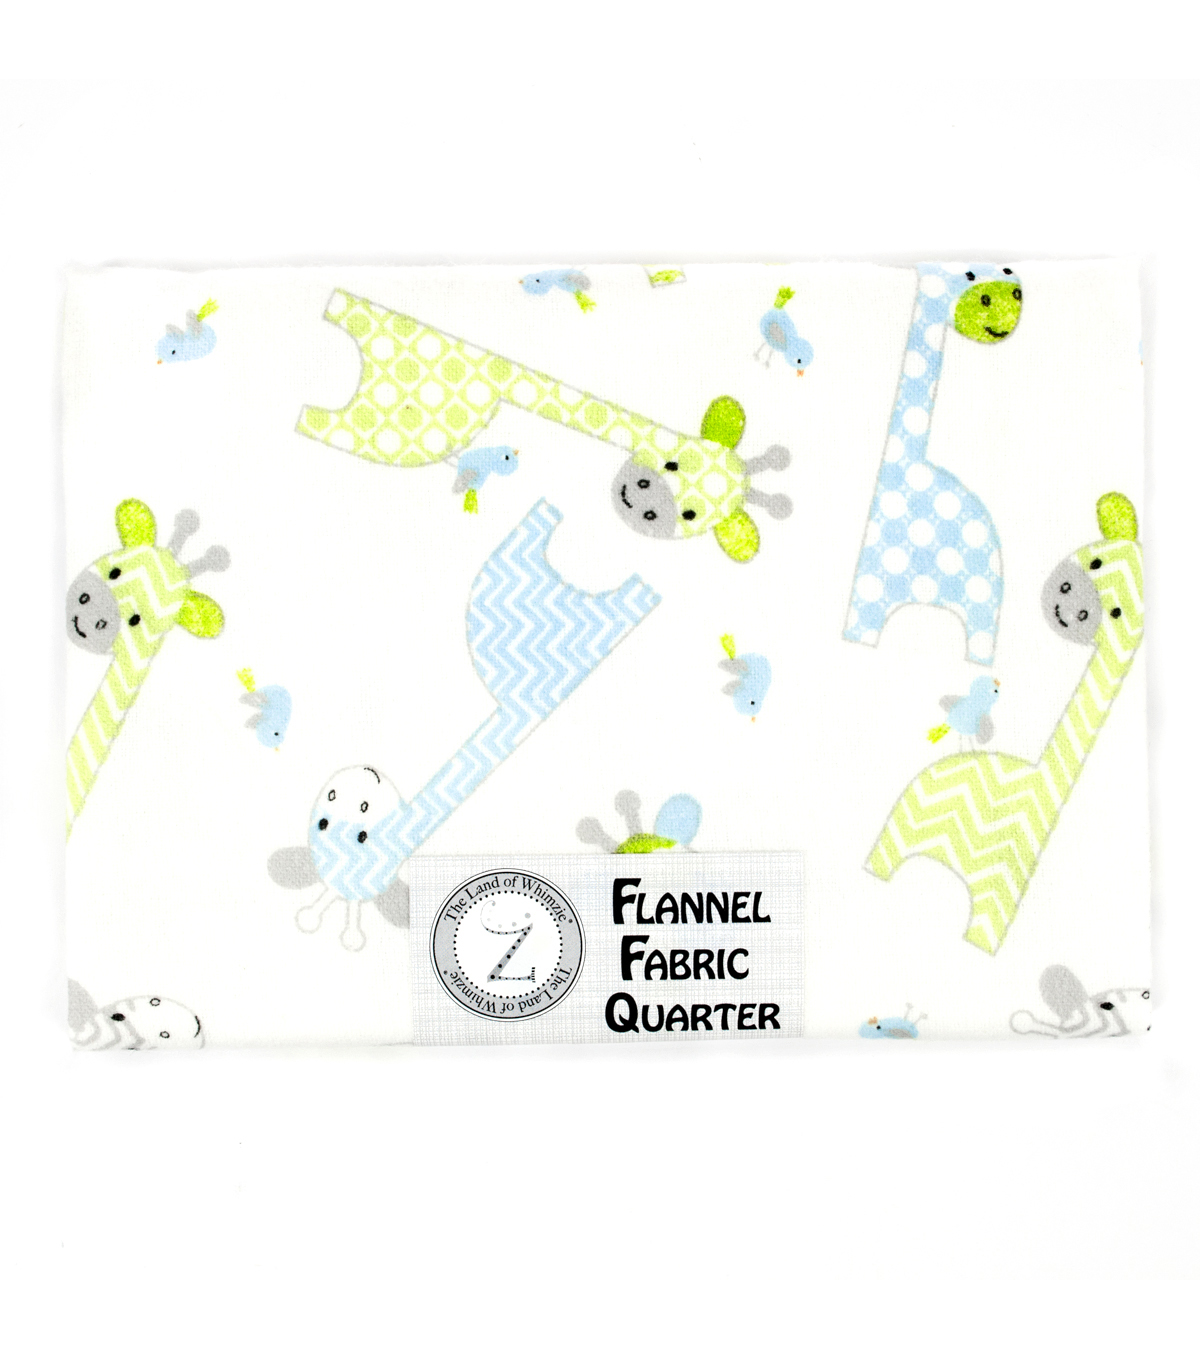 Land of Whimzie Giraffi Flannel Fabric Quarter 1 - 1 piece 18\u0022 x 21\u0022